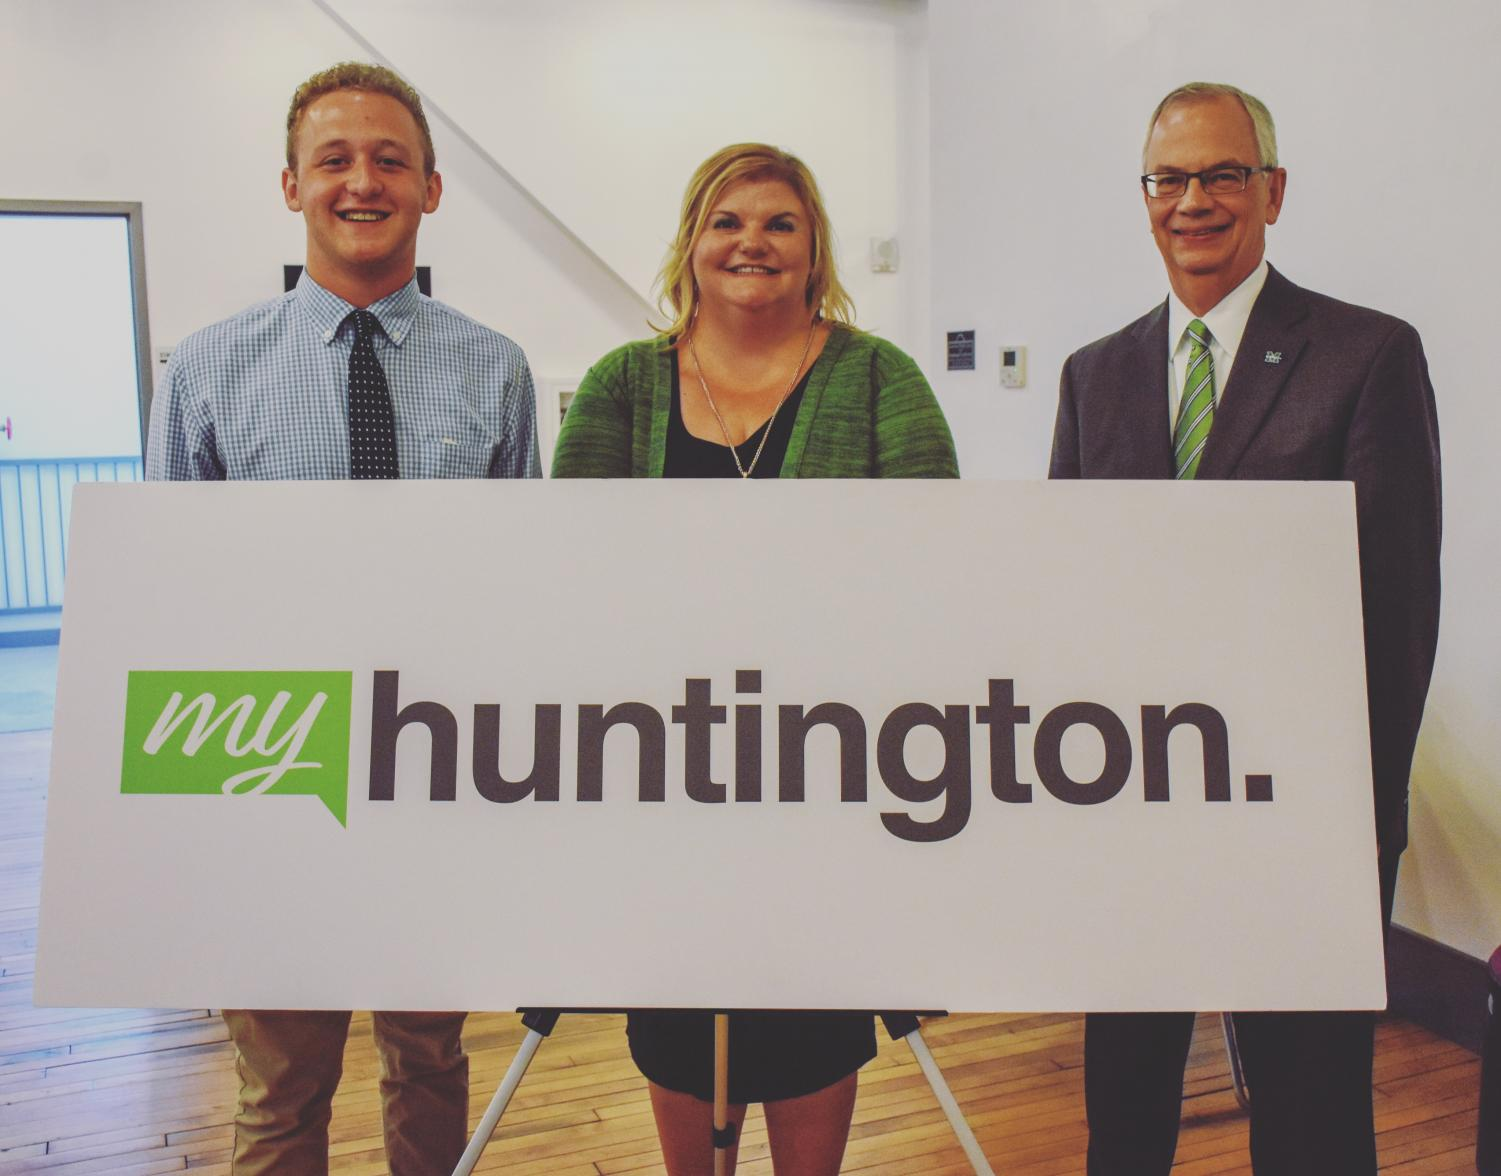 Franklin Norton, left, stands with Sarah Payne, associate vice president for external engagement at the Marshall University Research Corporation, and Marshall University president Jerry Gilbert at the My Huntington press conference on July 9.